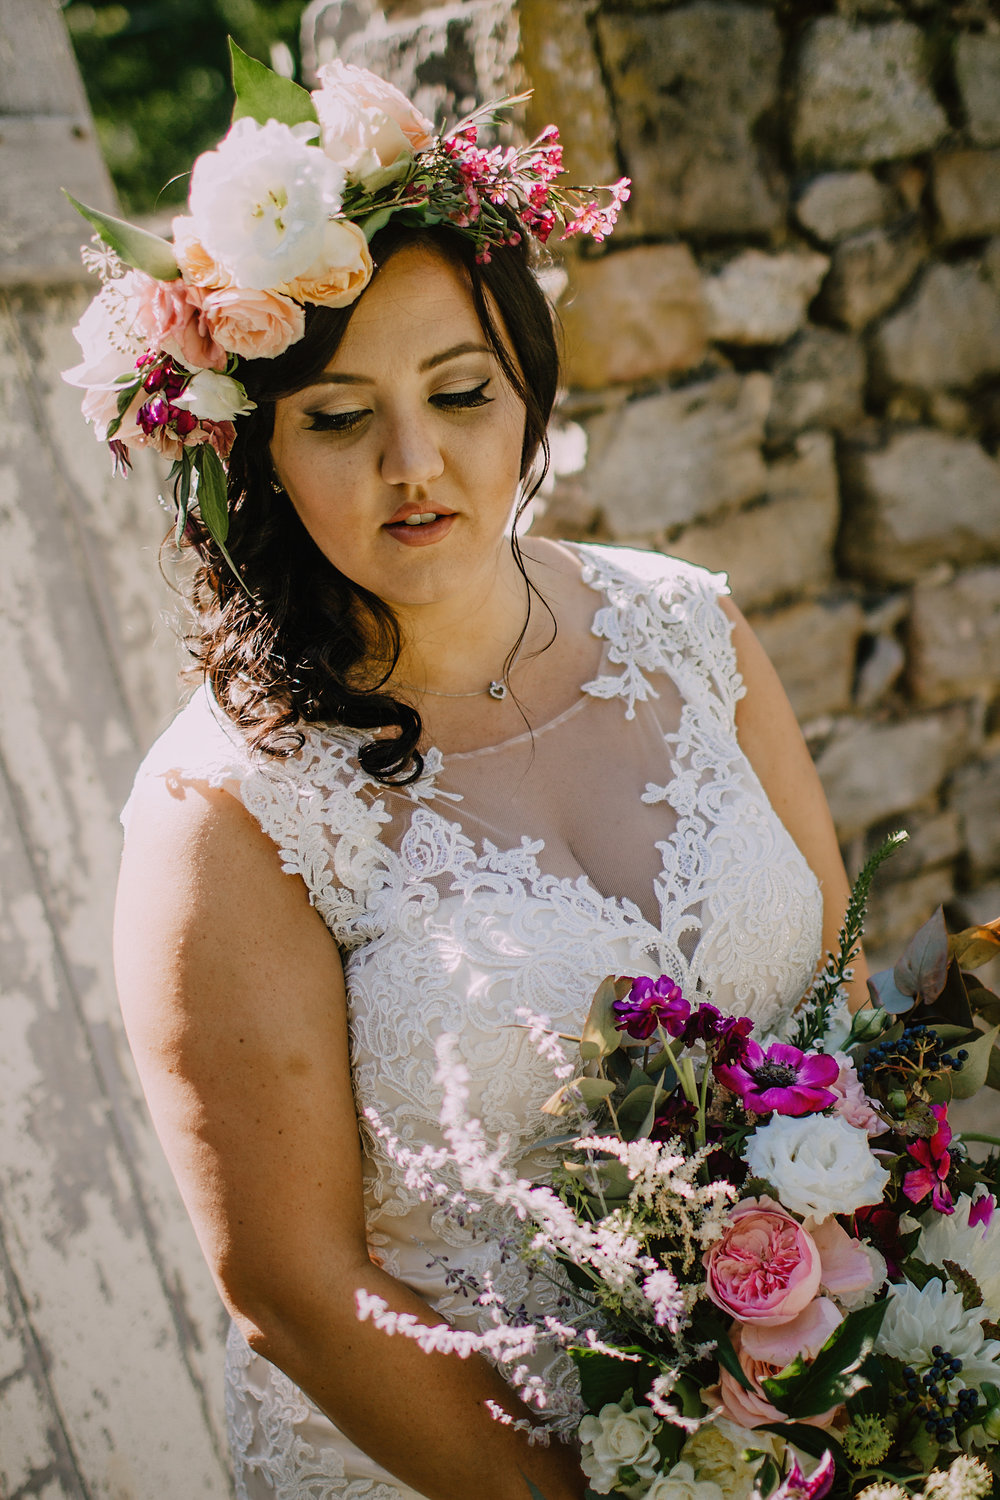 real love, suzanne collins, historic shady lane weddings, historic shady lane wedding, first dance, summer wedding, summer weddings, summer wedding ideas, summer wedding decor, Philly wedding florist, Philadelphia wedding florist, Lehigh Valley florist, Mainline wedding florists, Mainline wedding florist, floral crown, flower crown, bridal bouquet, bridal bouquets, summer bridal bouquet, summer bouquets, summer wedding bouquet, summer wedding bouquets, romantic wedding decor, romantic summer wedding, bridesmaids bouquets, a cottage gardener, kim bakke, summer wedding reception ideas, wildflower bouquet, wildflower bouquets, boho wedding, boho wedding bouquet, boho wedding bouquets